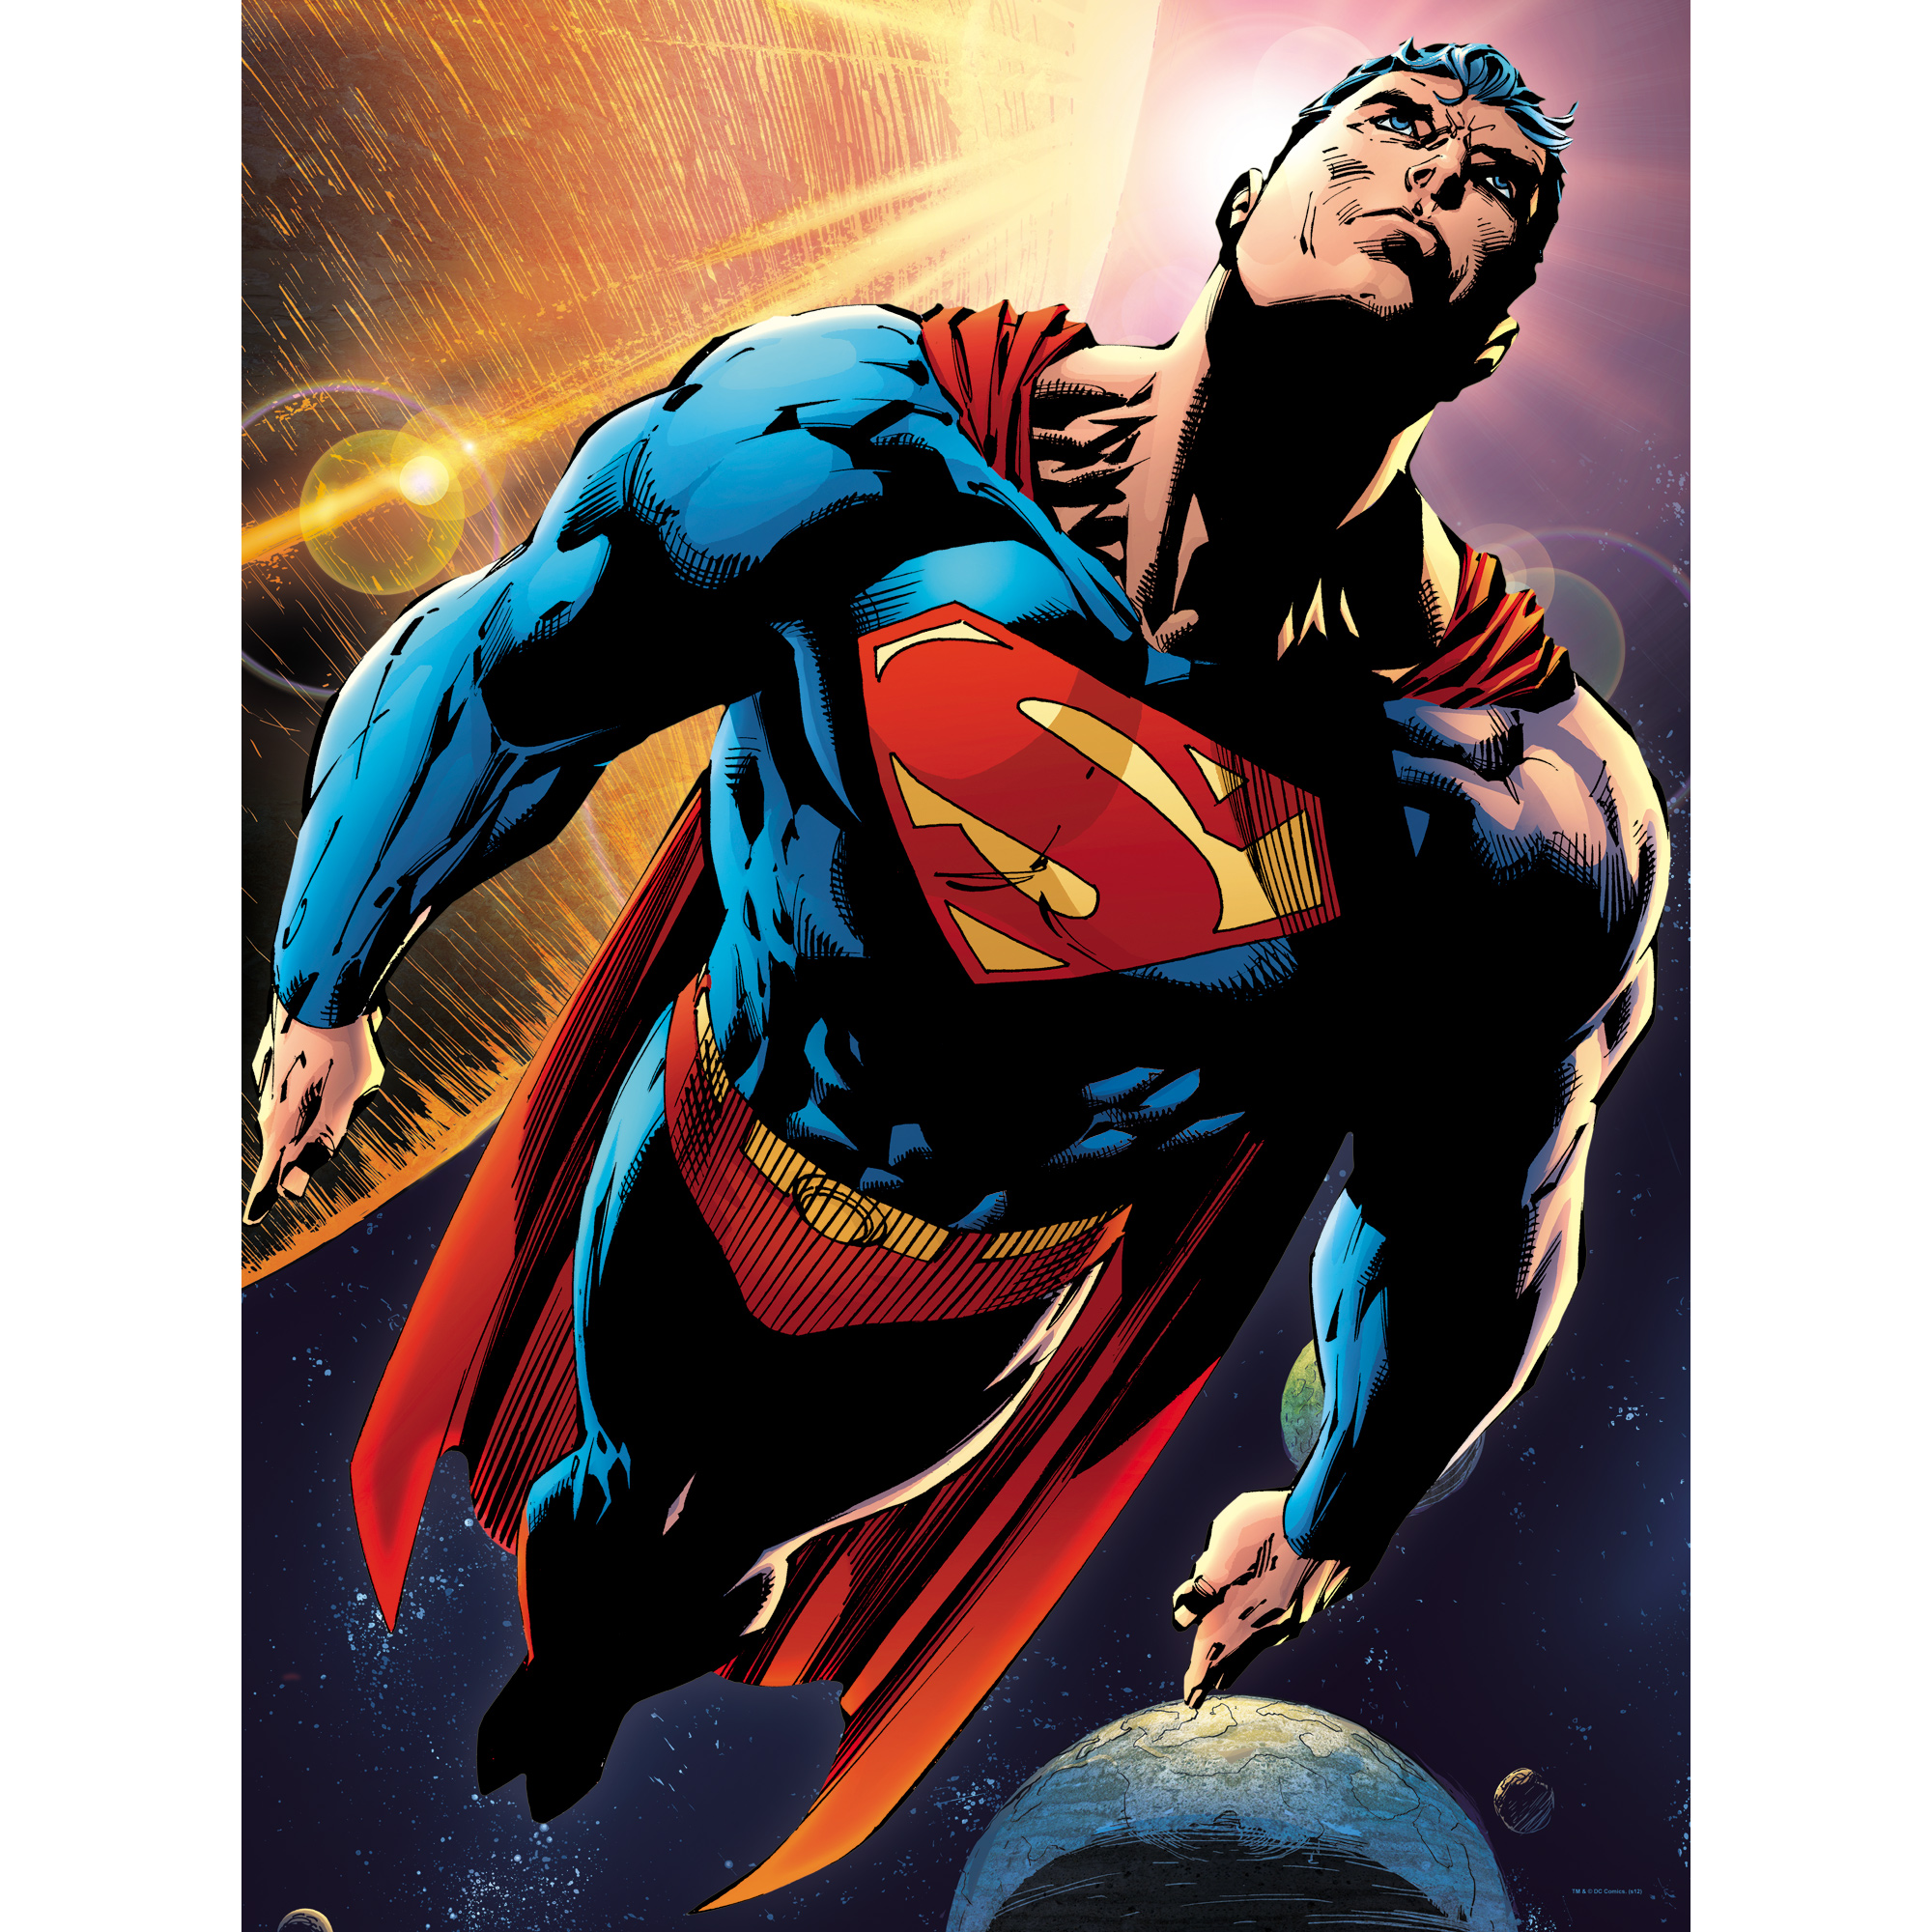 Art Of Comics And Manga: Lol DC Is Killing The Current Superman To Replace Him With